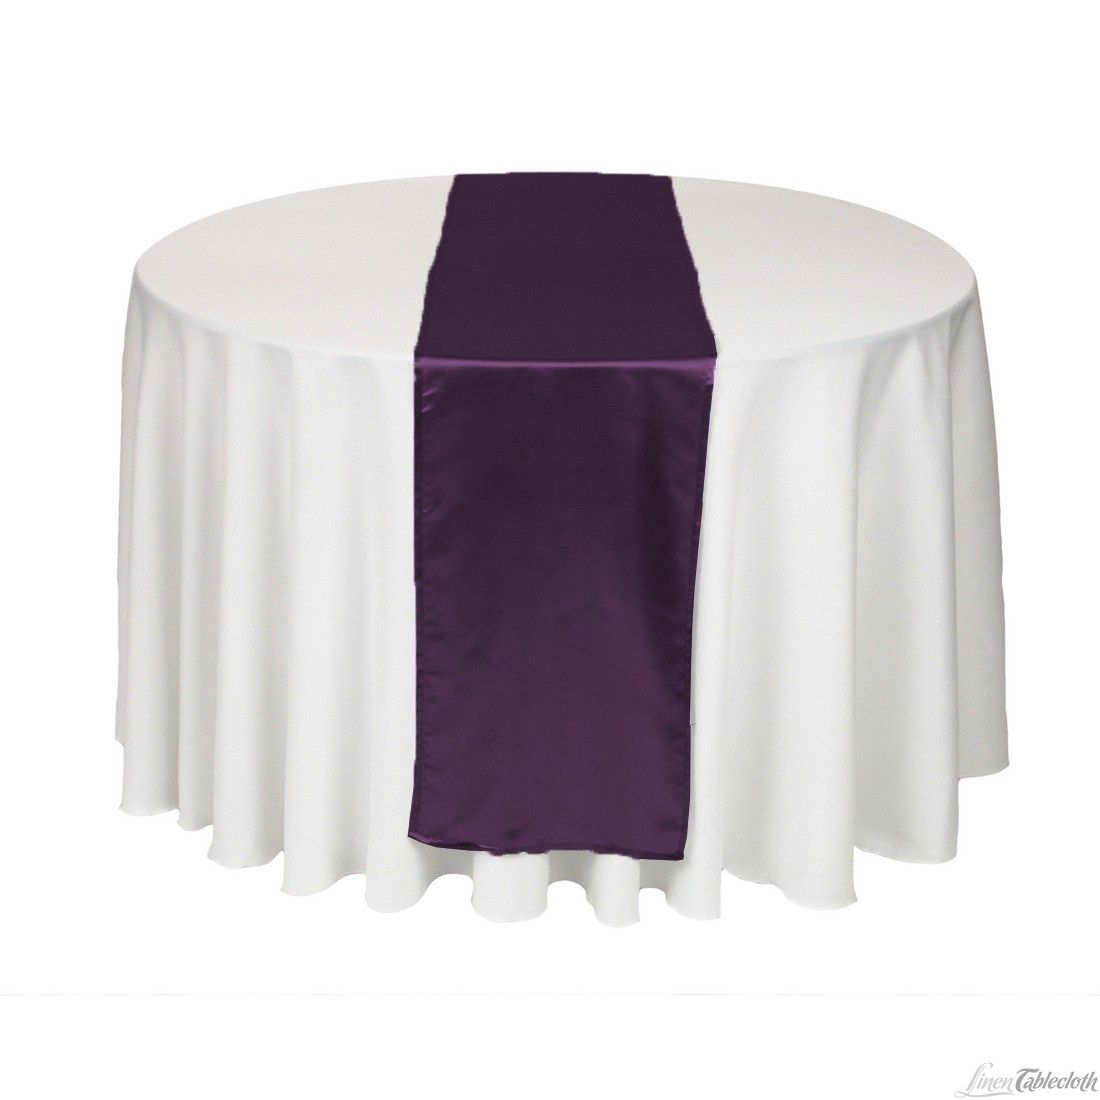 14 X 108 Eggplant Satin Table Runner Wedding Linentablecloth Add